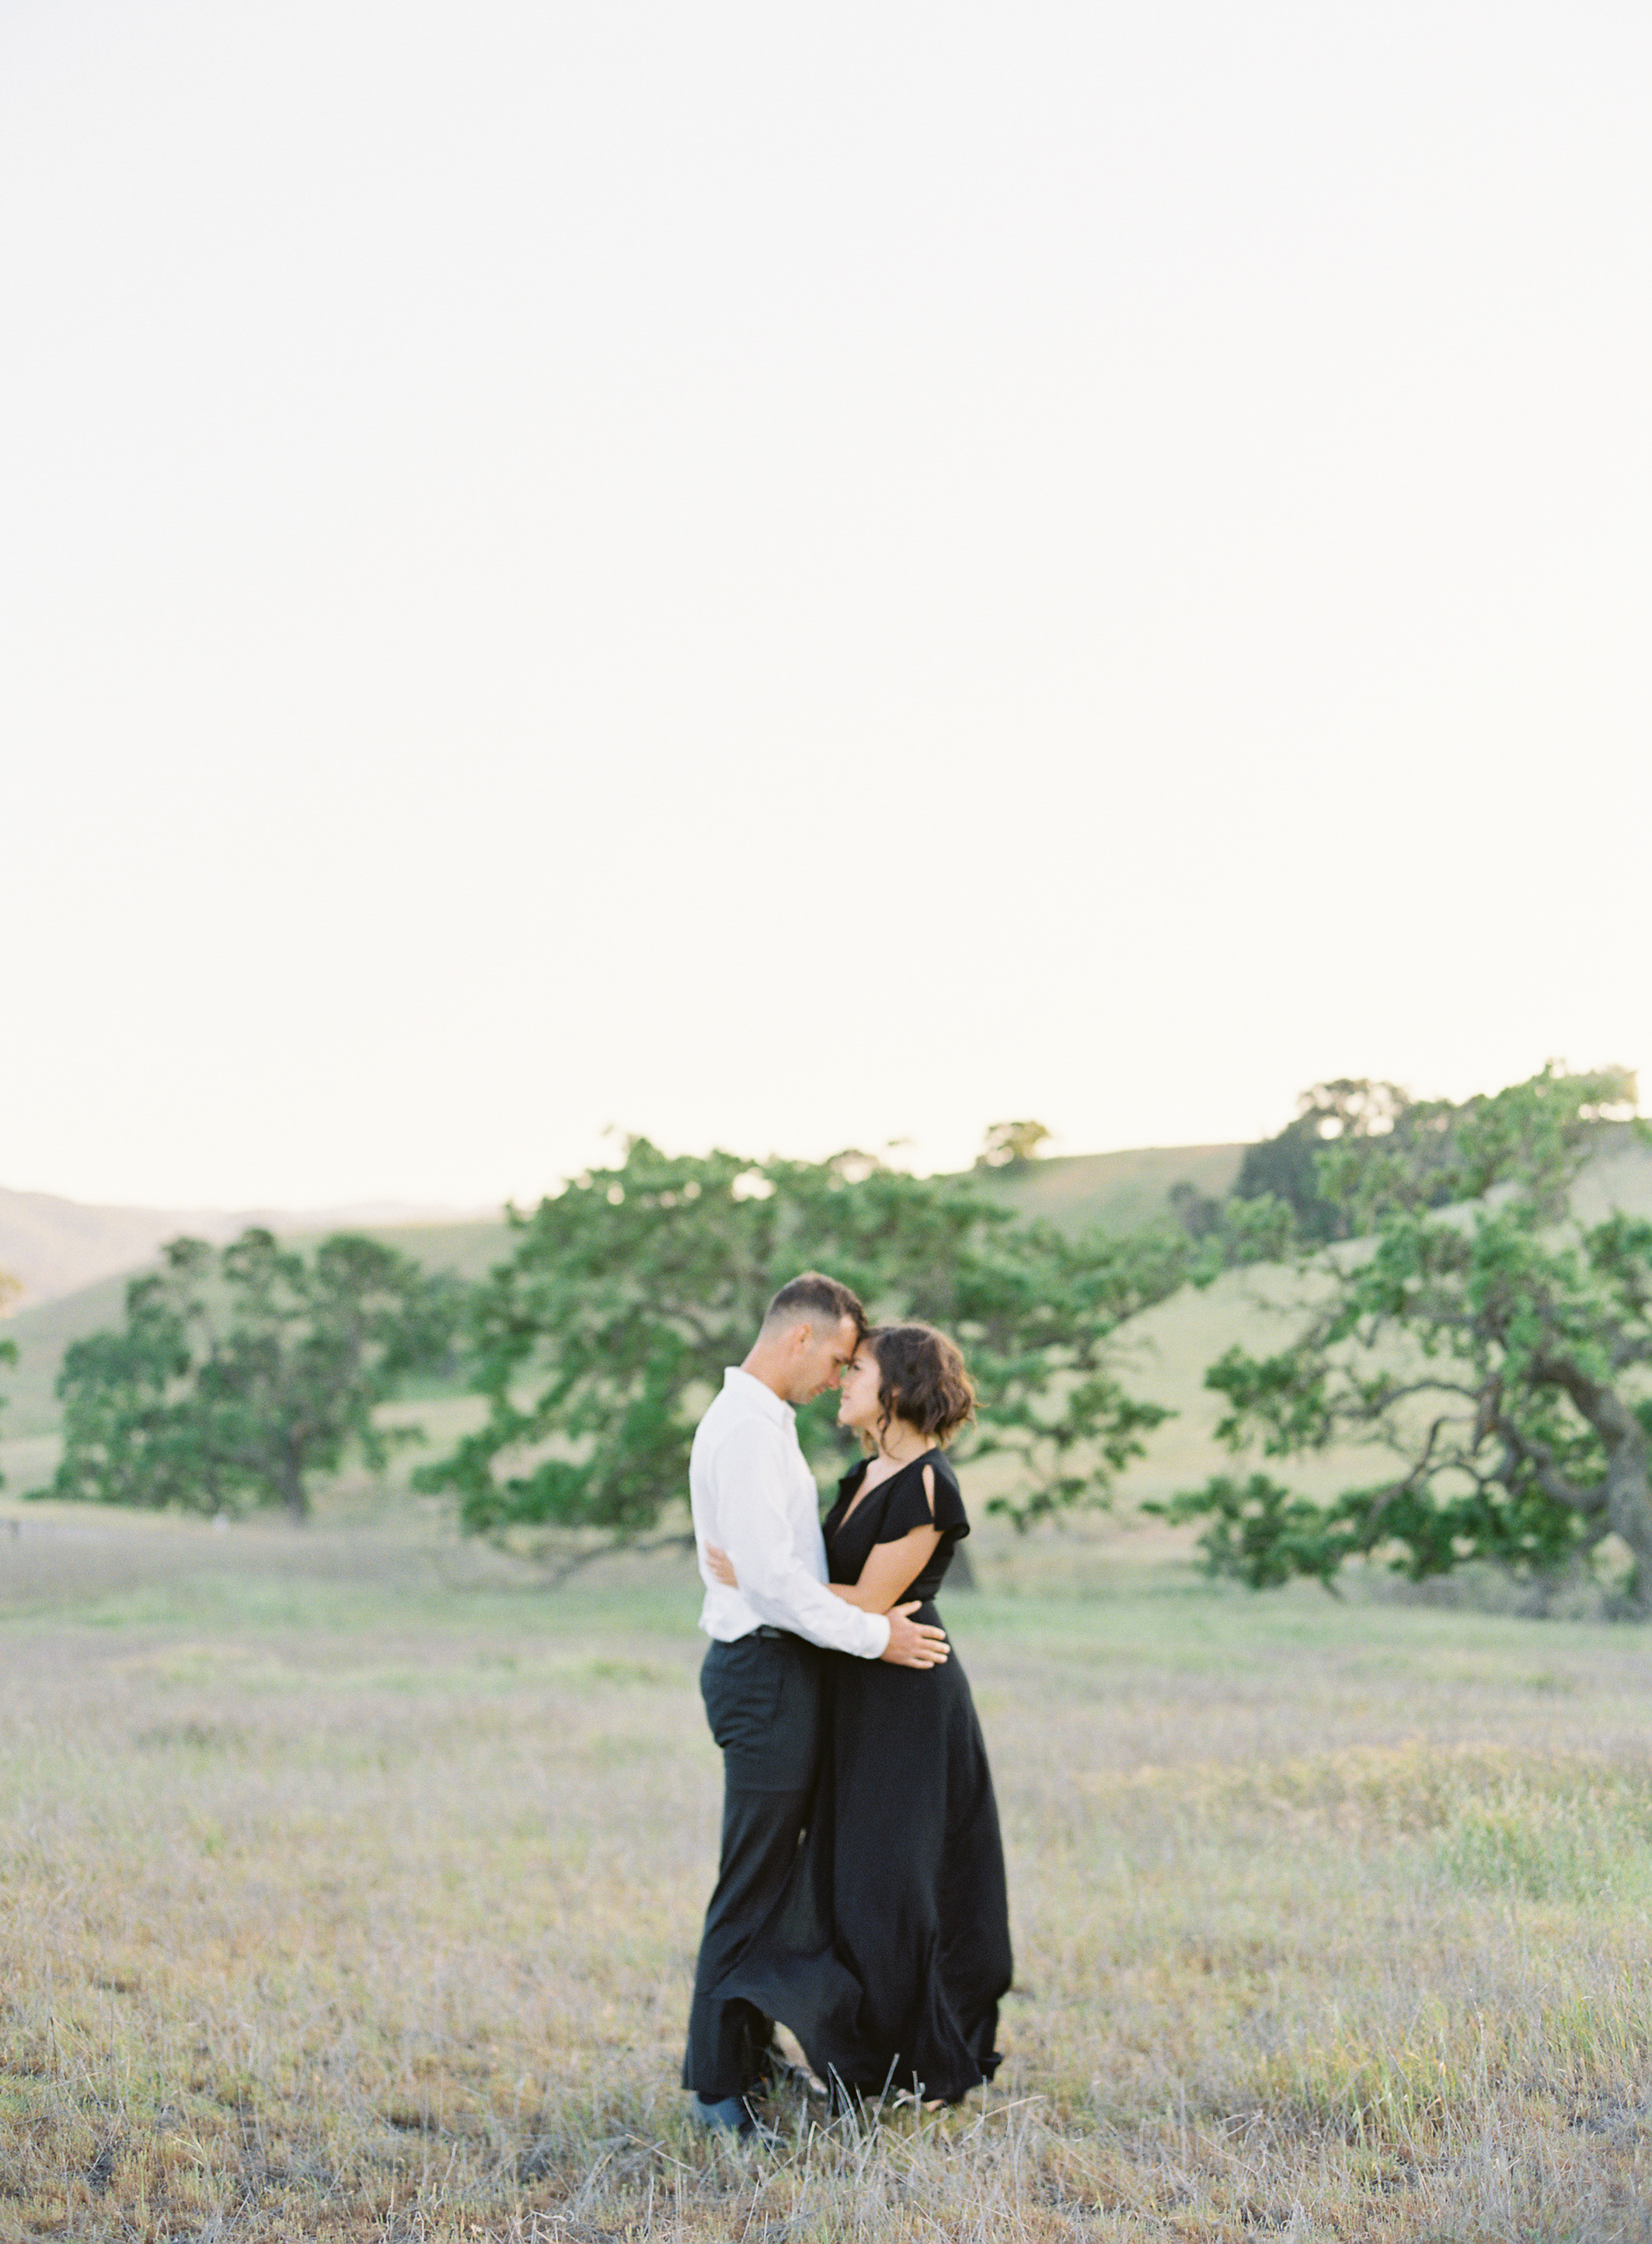 blake_alyssa_engagement-68.jpg